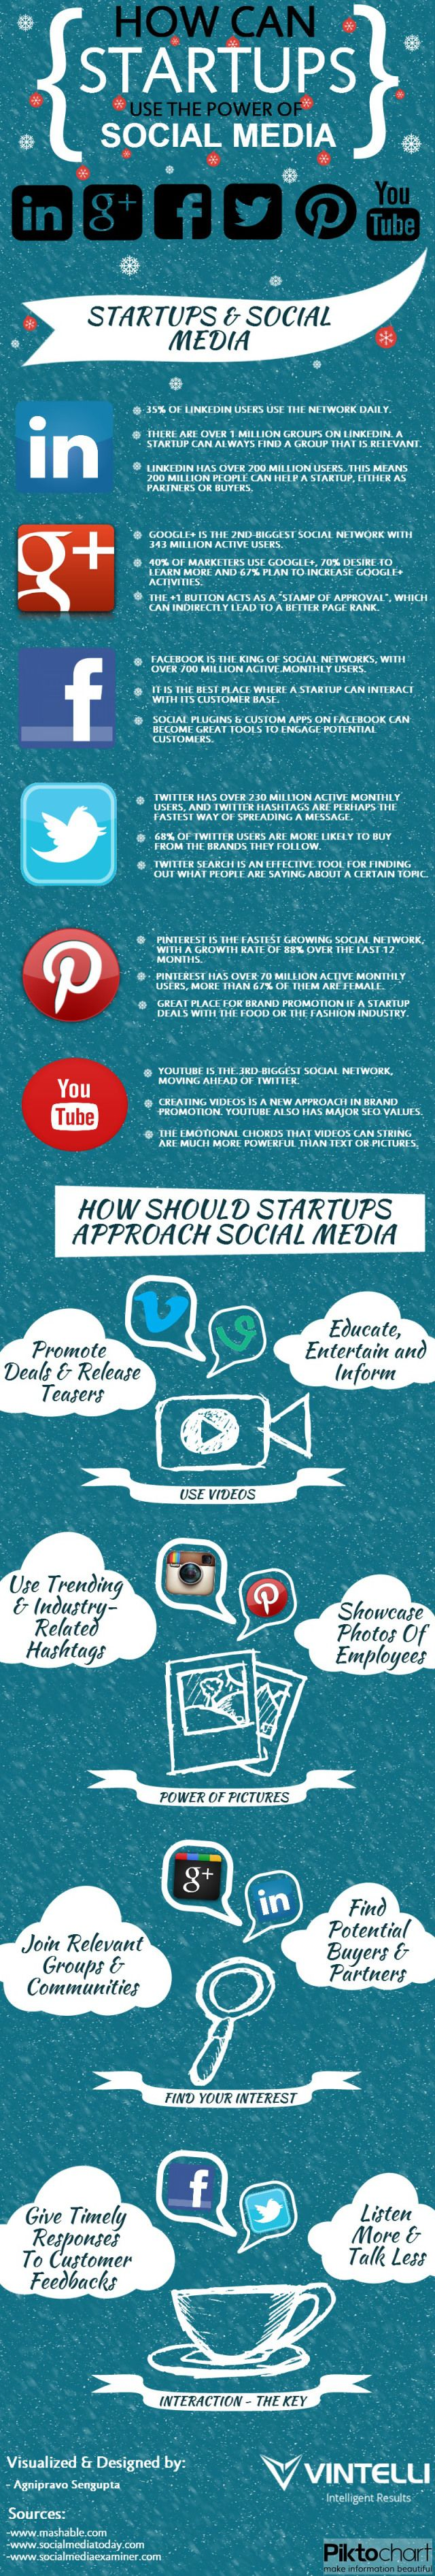 How can Startups use the power of Social Media #infografia #infographic